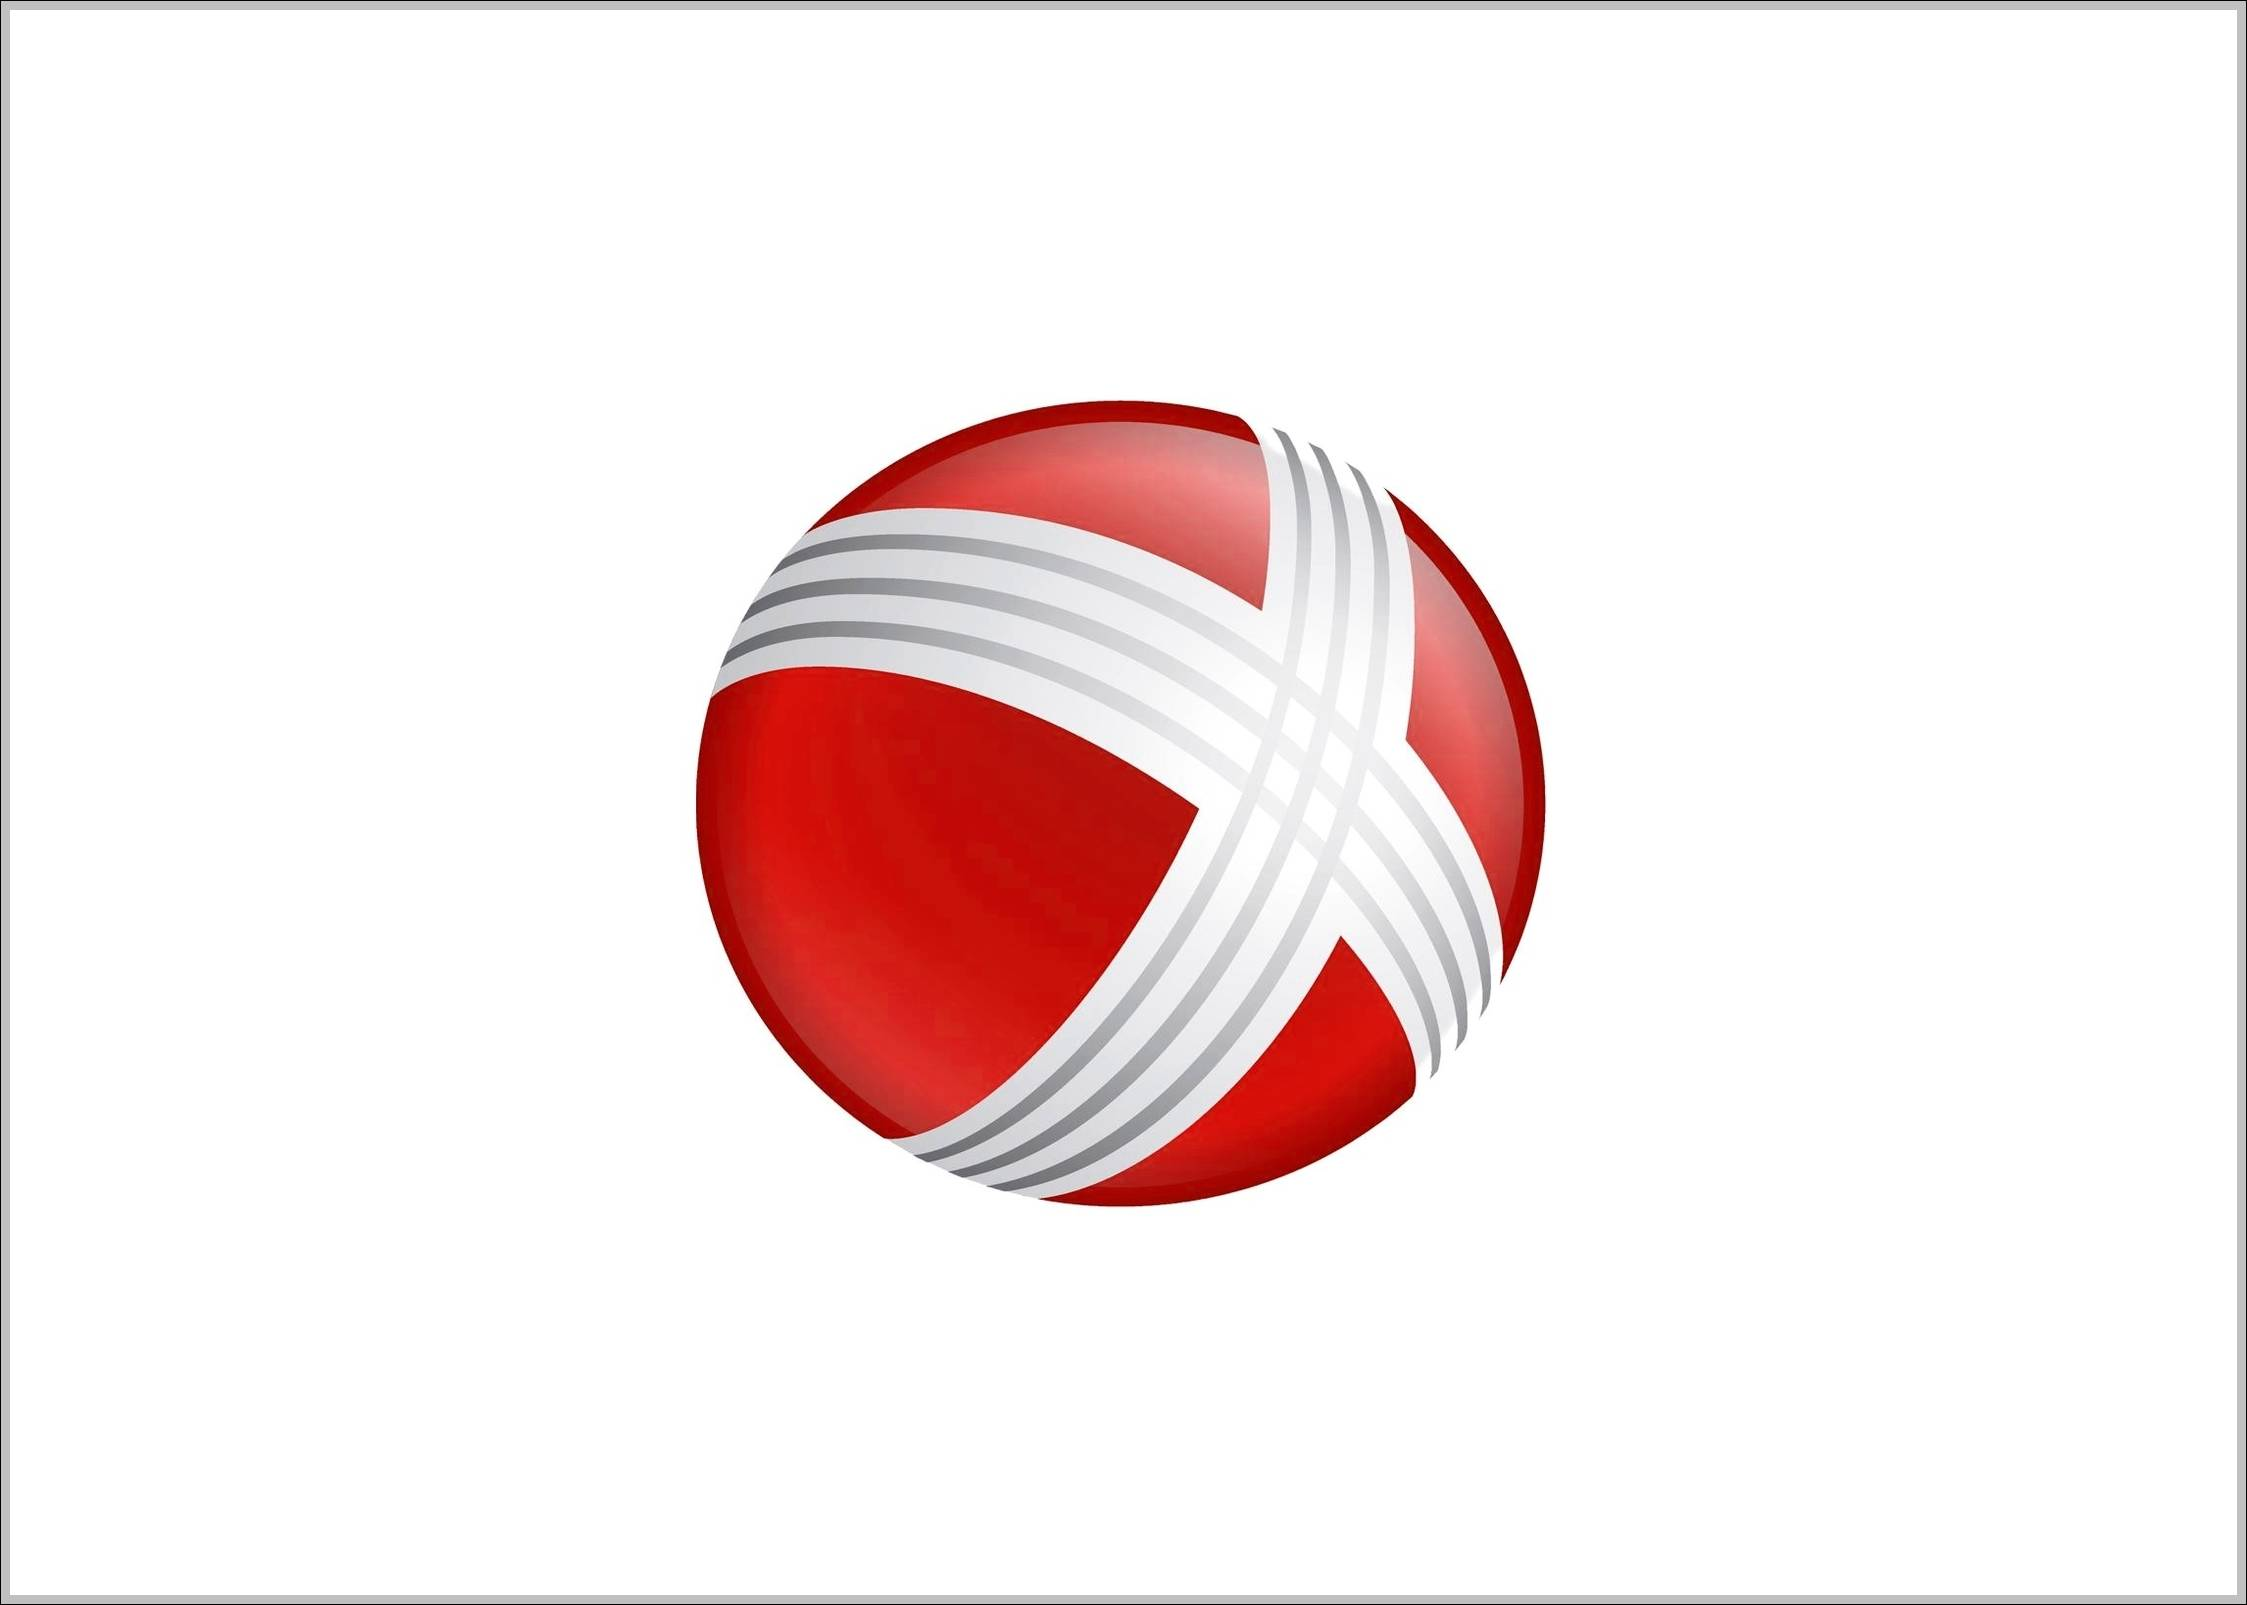 Xerox Logo - Xerox logo | Logo Sign - Logos, Signs, Symbols, Trademarks of ...